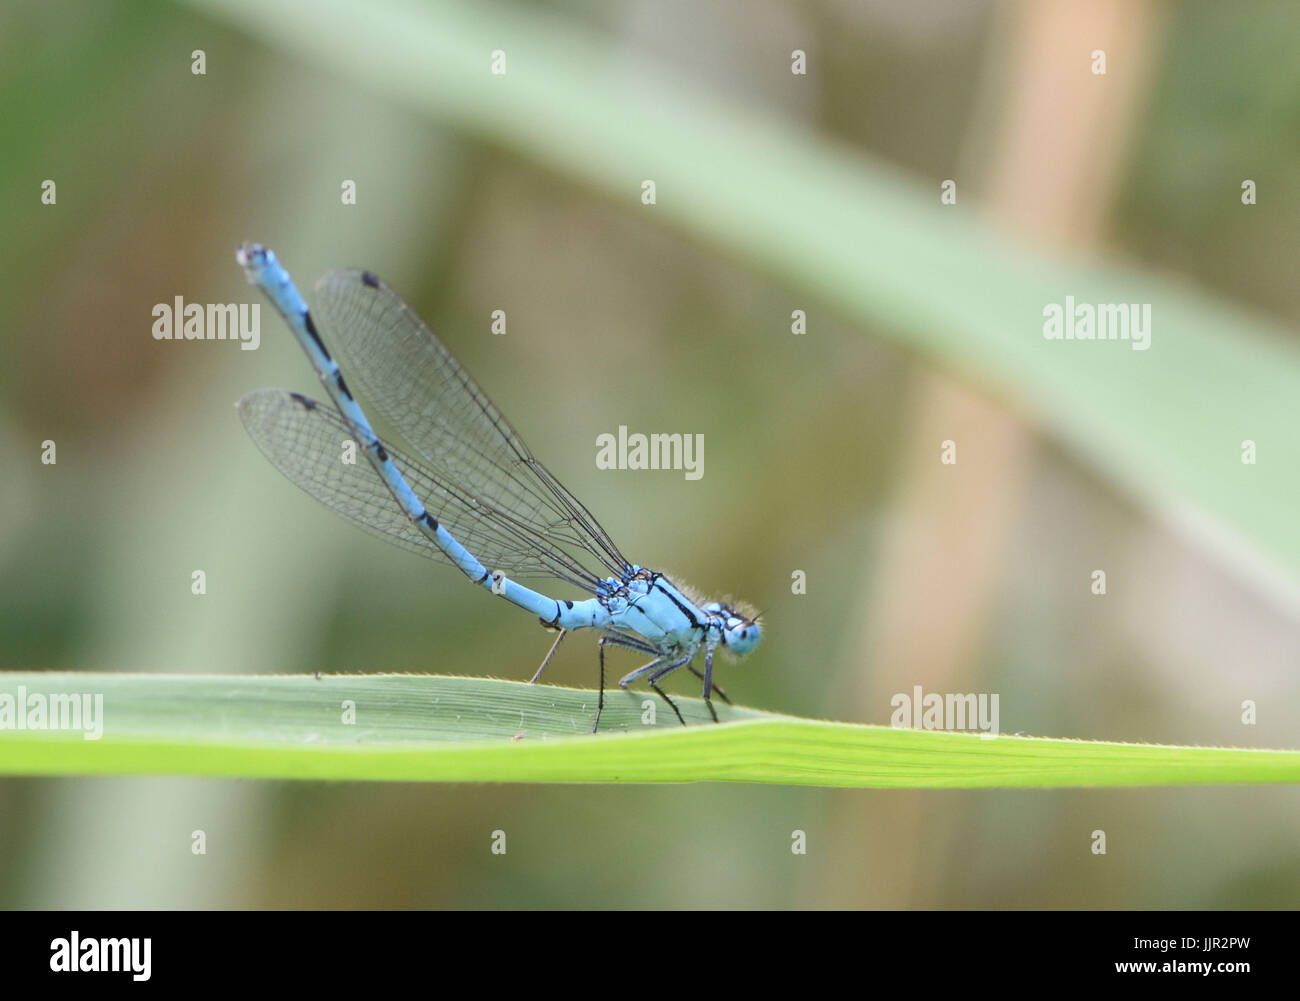 A male common blue damselfly (Enallagma cyathigerum) rests on a blade of grass in obelisk posture to prevent overheating. - Stock Image